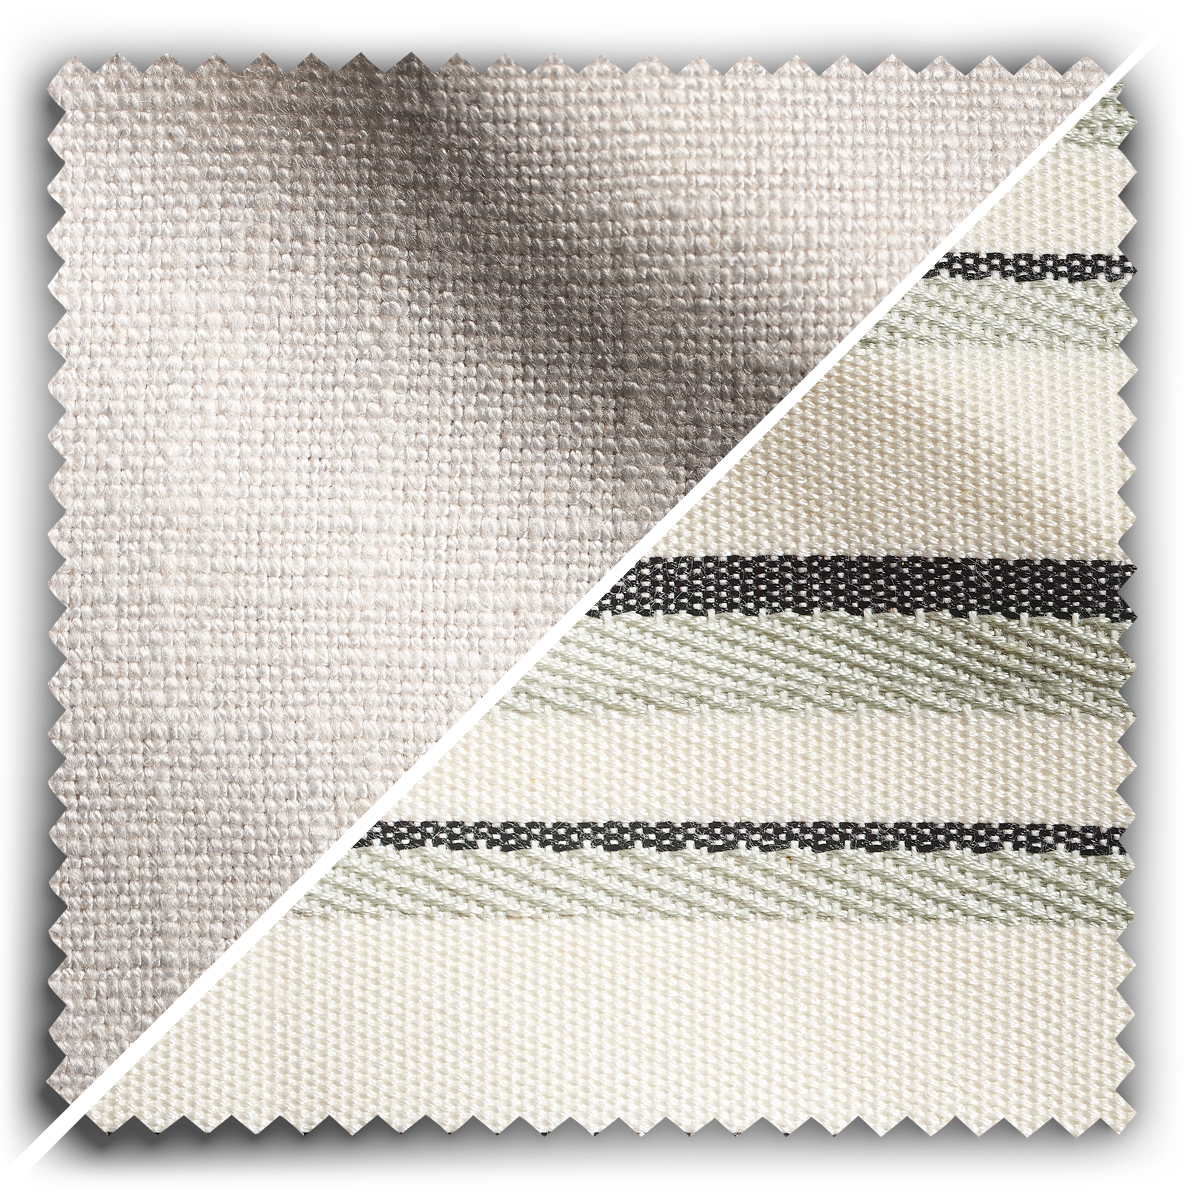 Image of Studio Stripes Soft Stone fabric